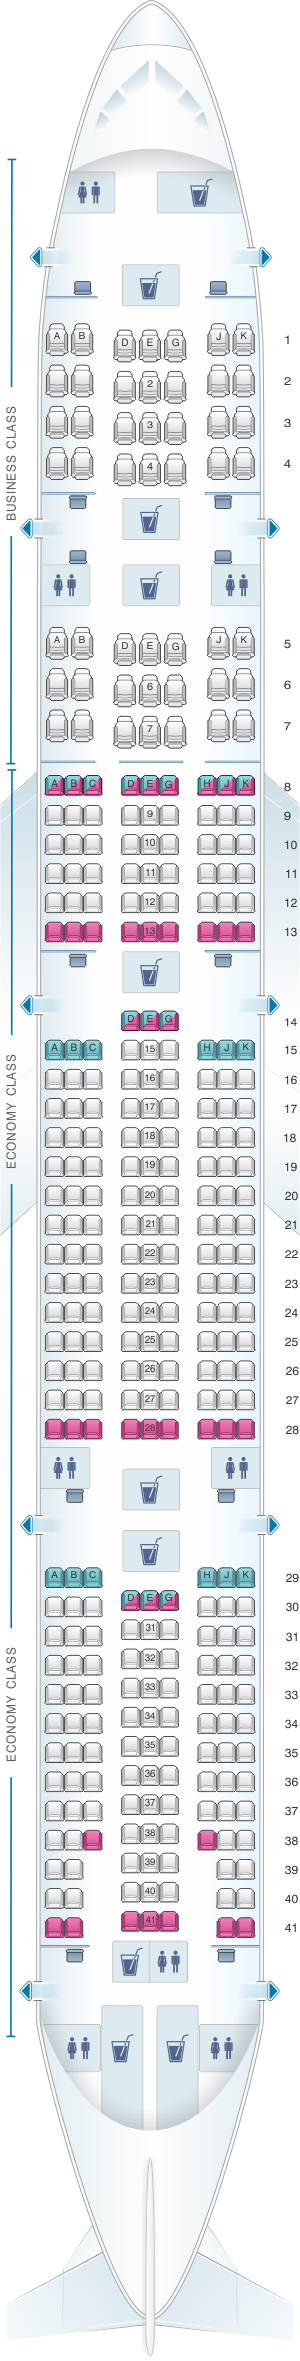 Seat map for Turkish Airlines Boeing B777 300ER